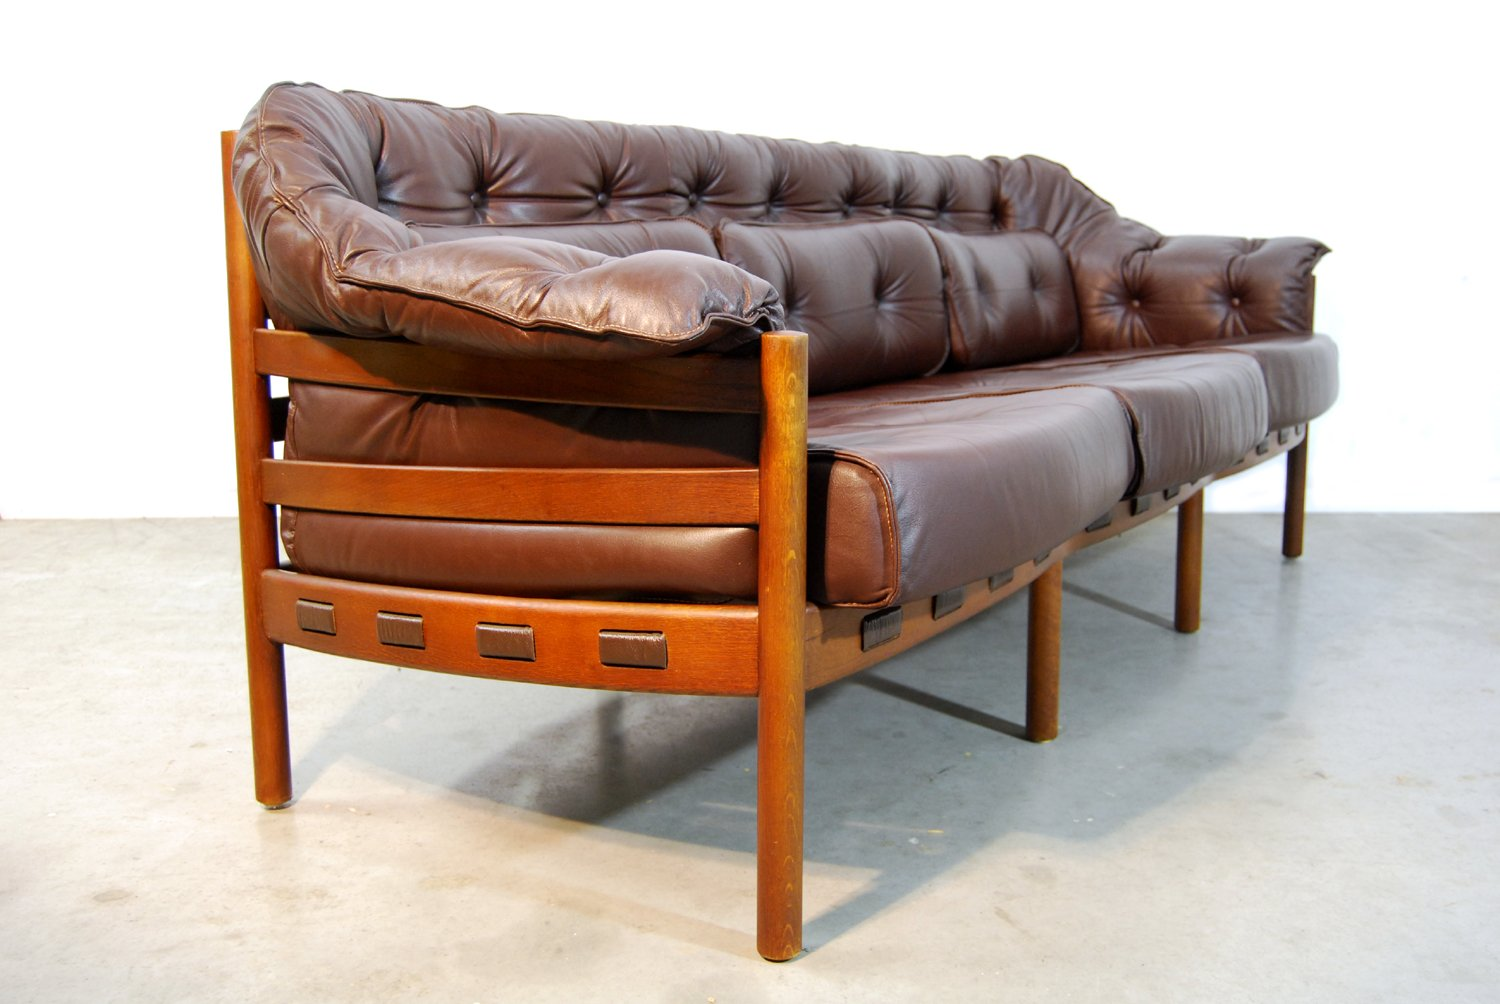 Mid Century Swedish Sofa By Arne Norell For Coja 1960s For Sale At Pamono